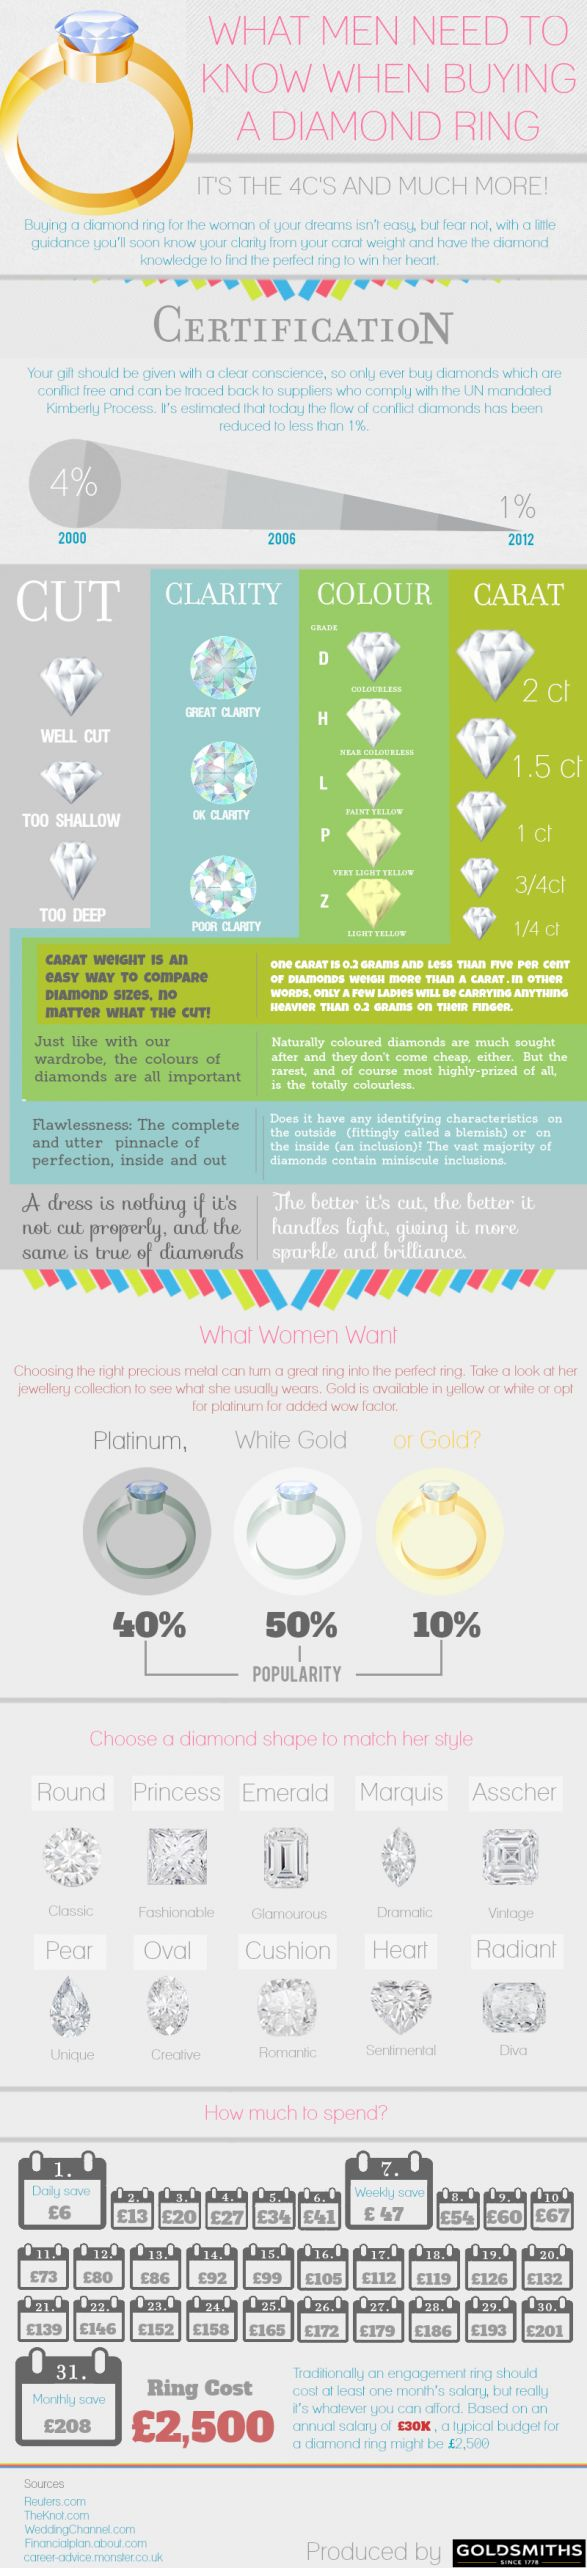 What Men need to know about buying a diamond ring